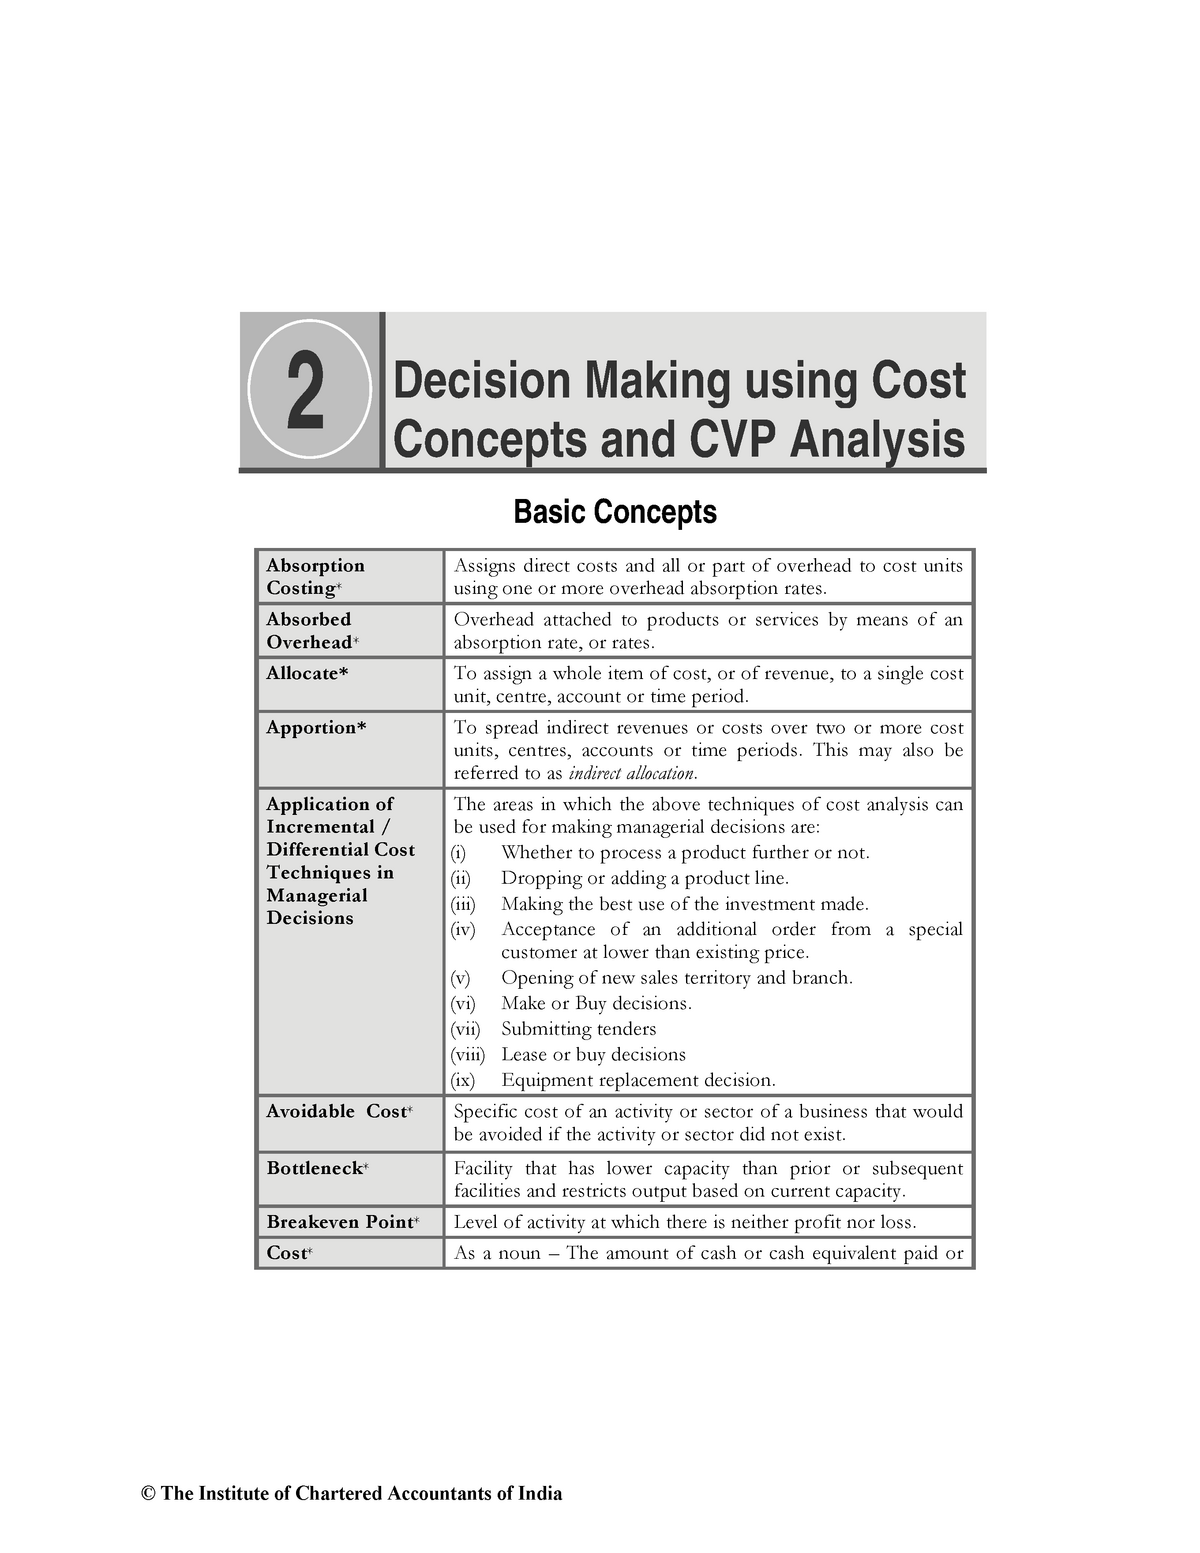 Decision Making using cost concept and CVP Analysis - StuDocu